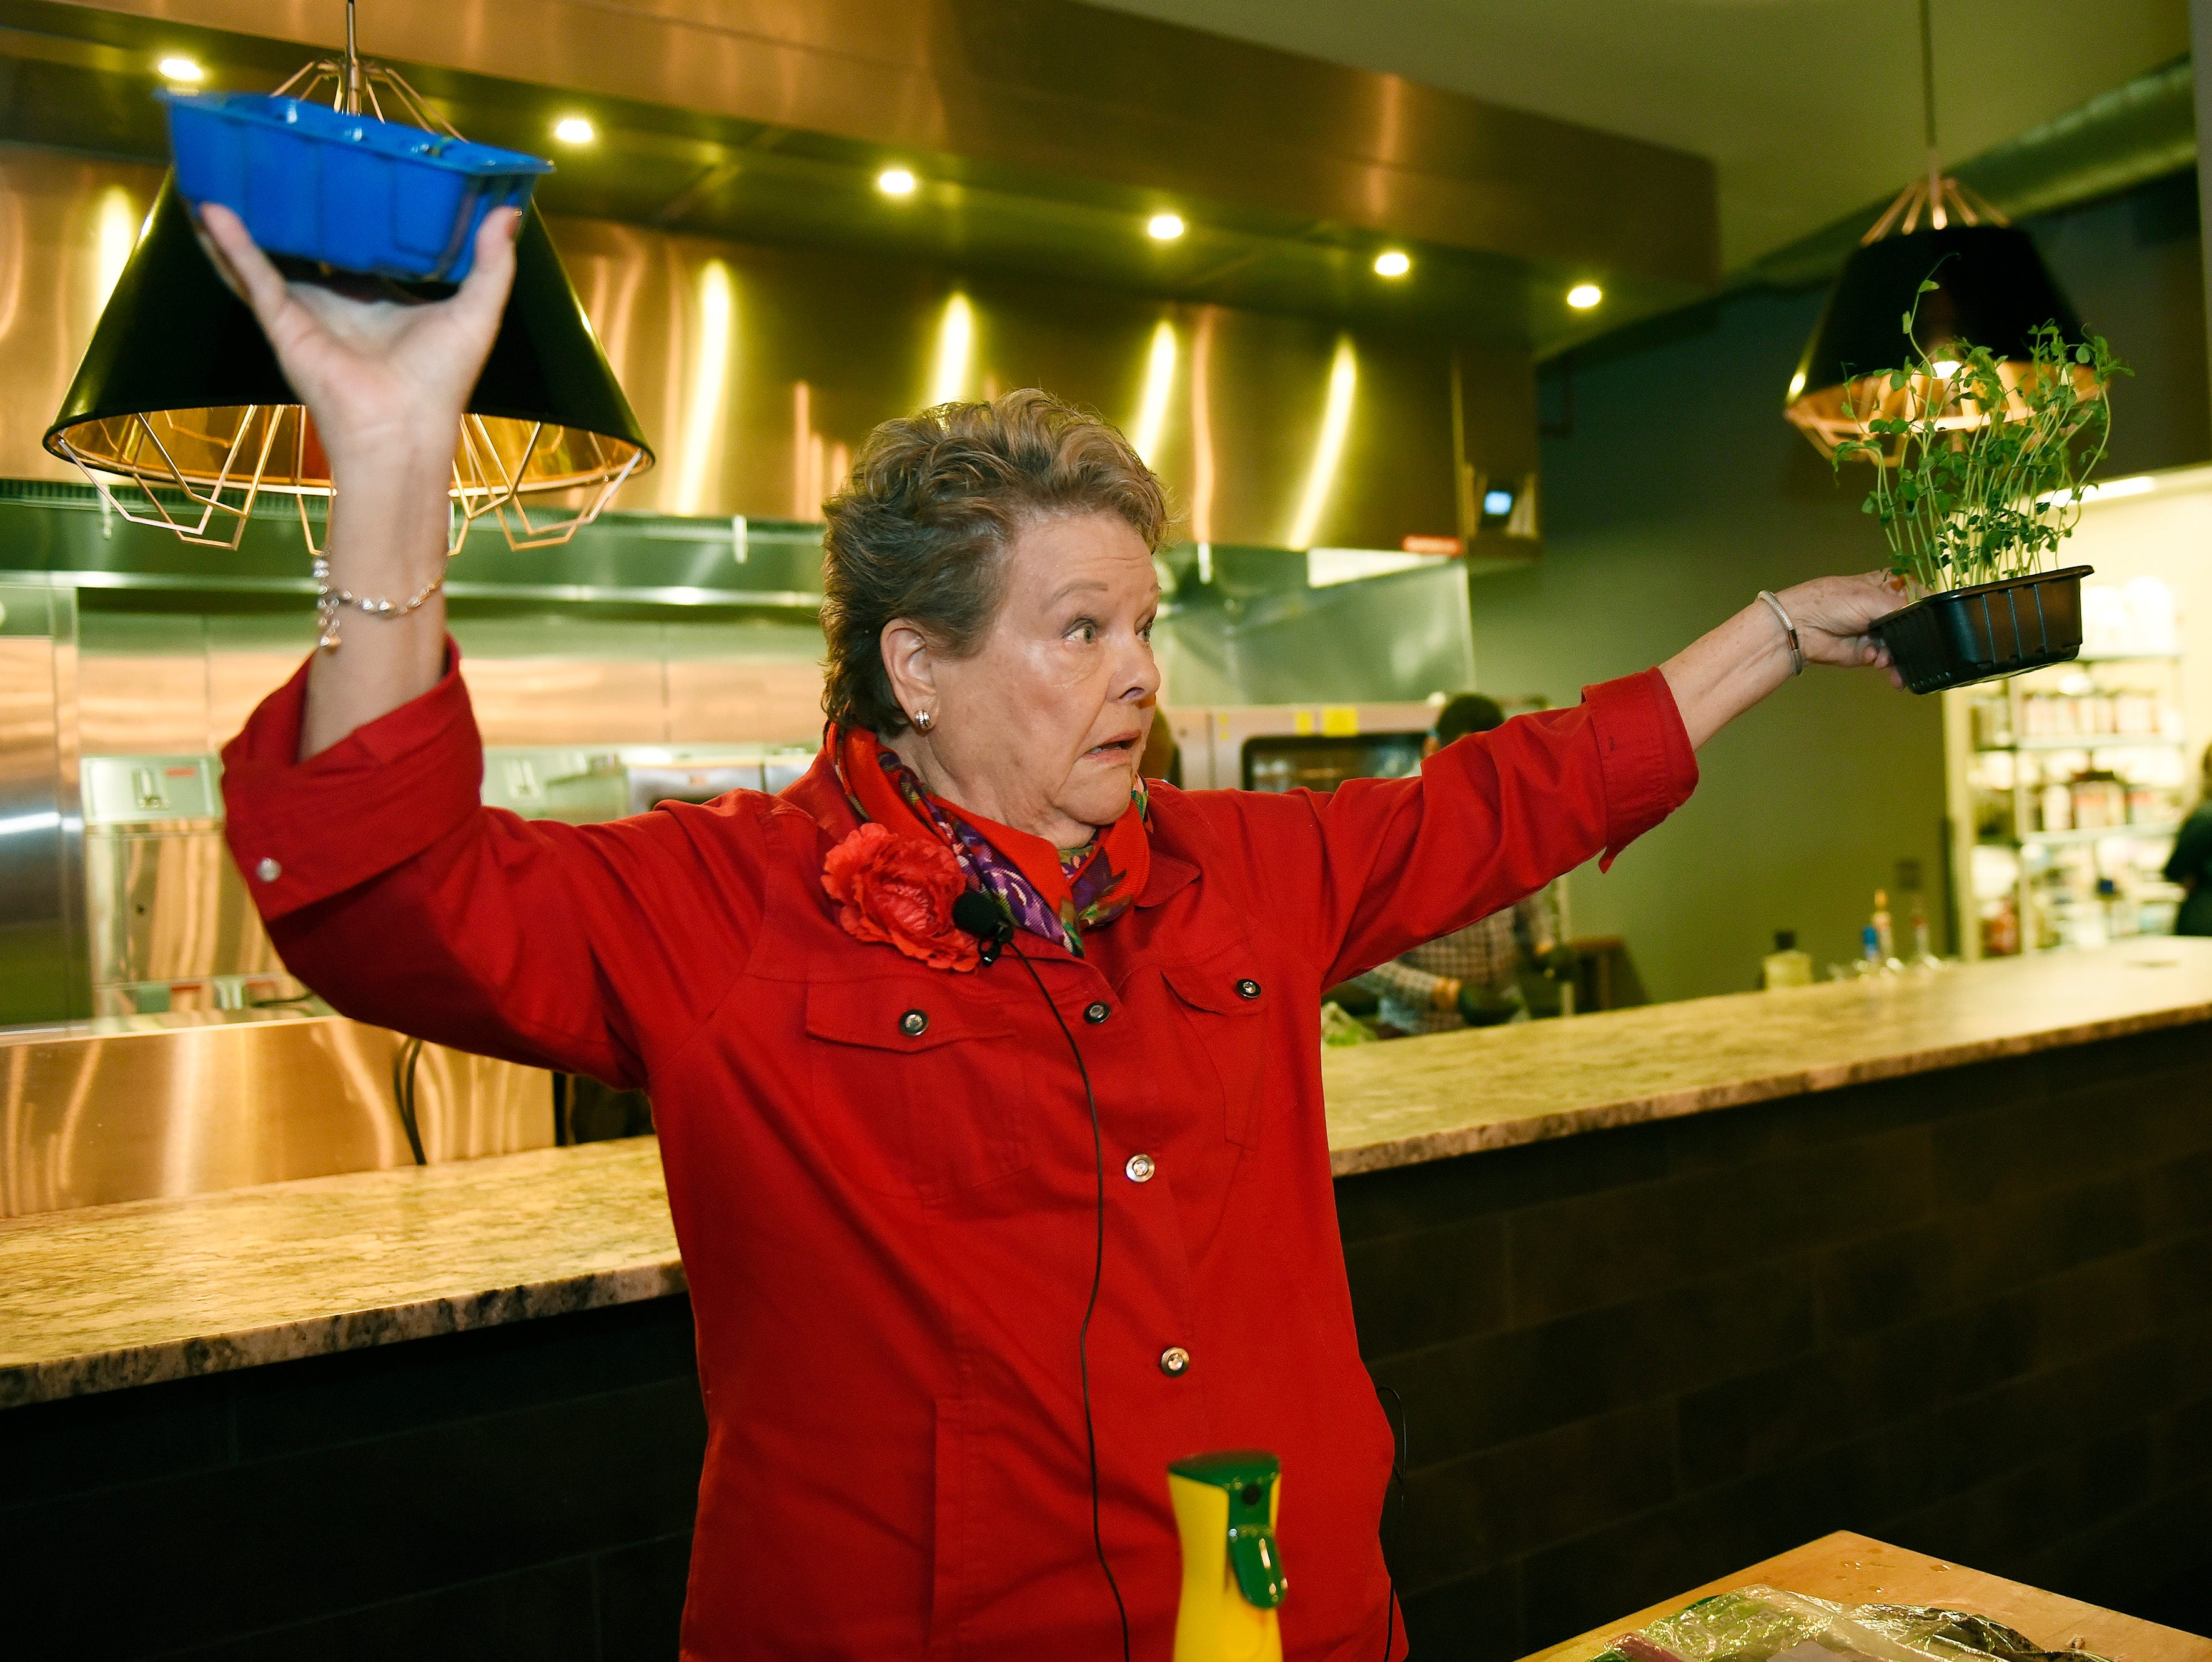 """Nancy Szerlag, a master composter and a garden writer presents her tips on gardening.  Swing Into Spring"""" Dish & Design March 20 at  at the Great Lakes Culinary Center in Southfield, Mi."""